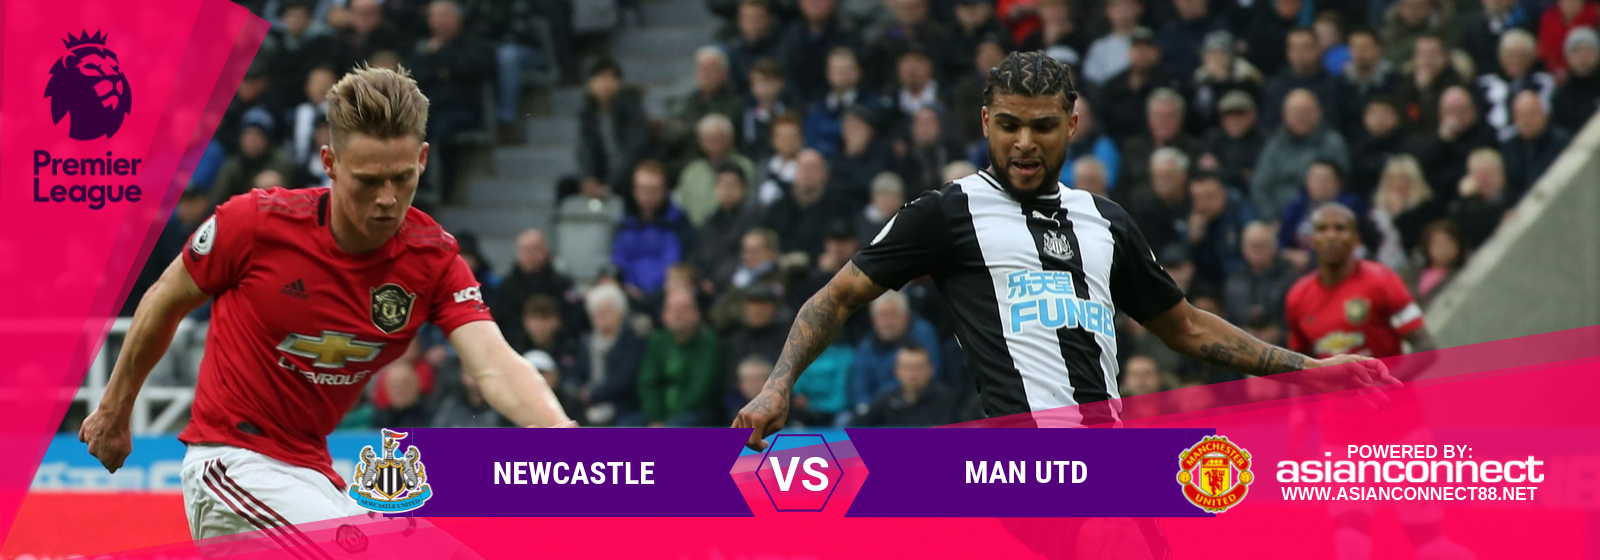 EPL Newcastle Vs. Man Utd Asian Connect